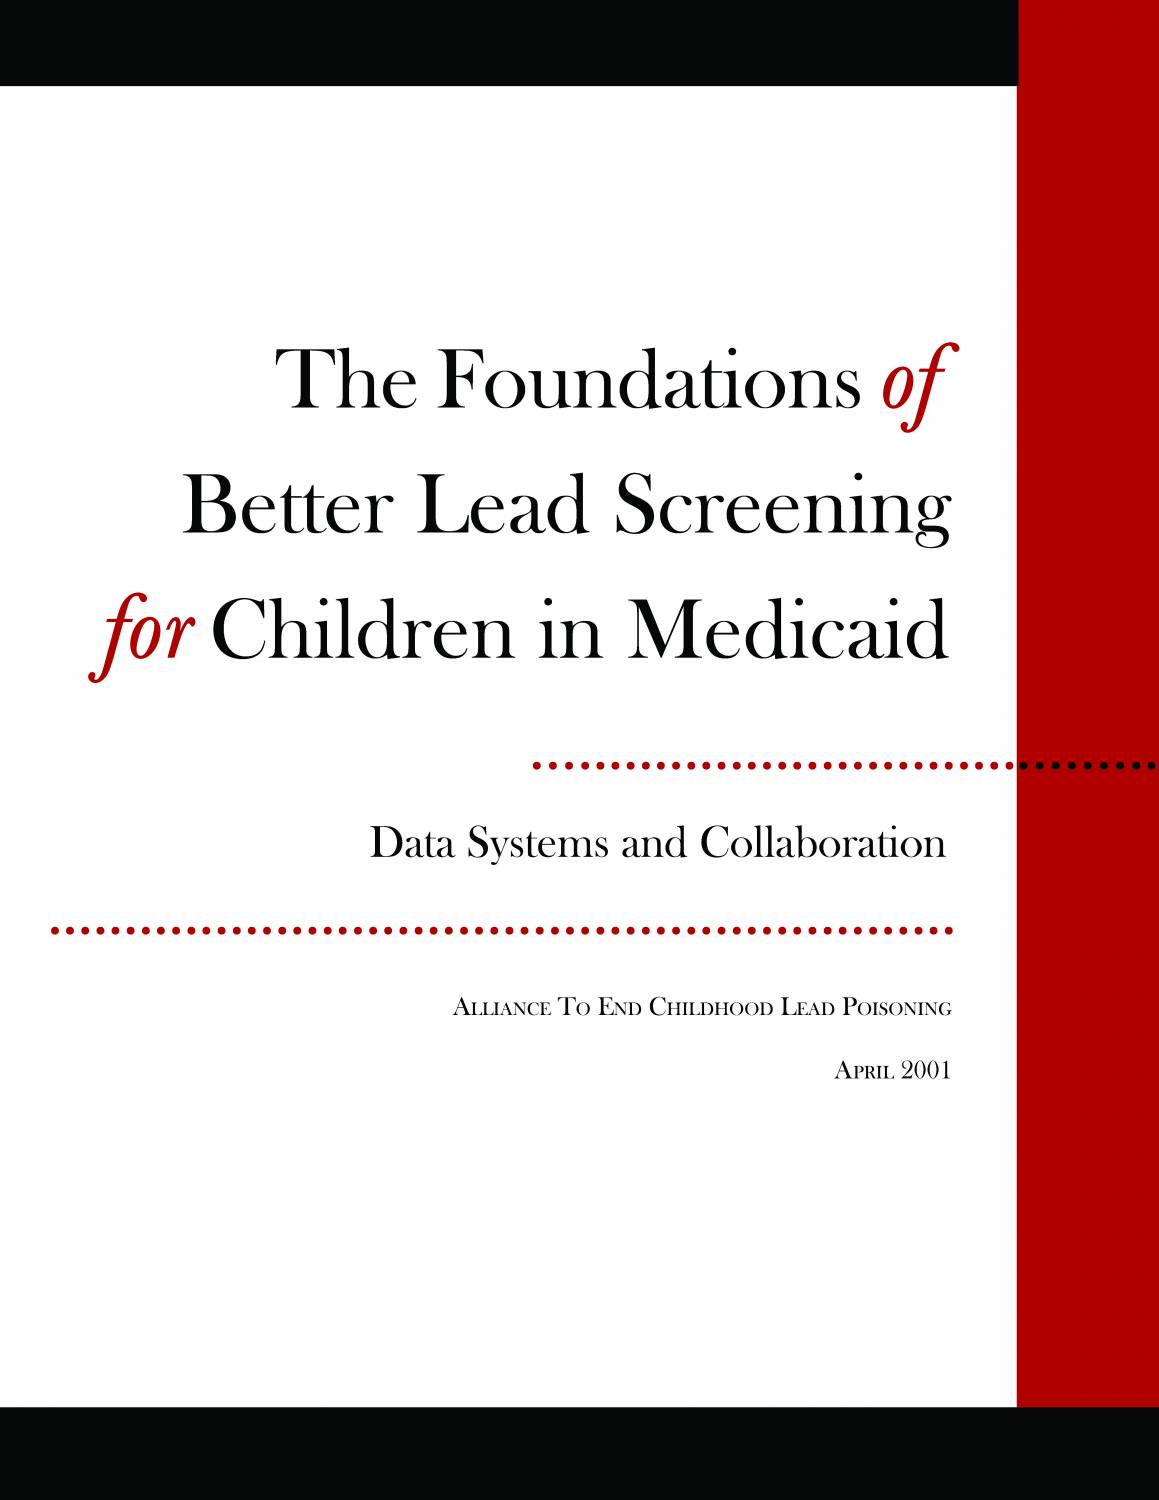 The Foundations of Better Lead Screening for Children in Medicaid: Data Systems and Collaboration